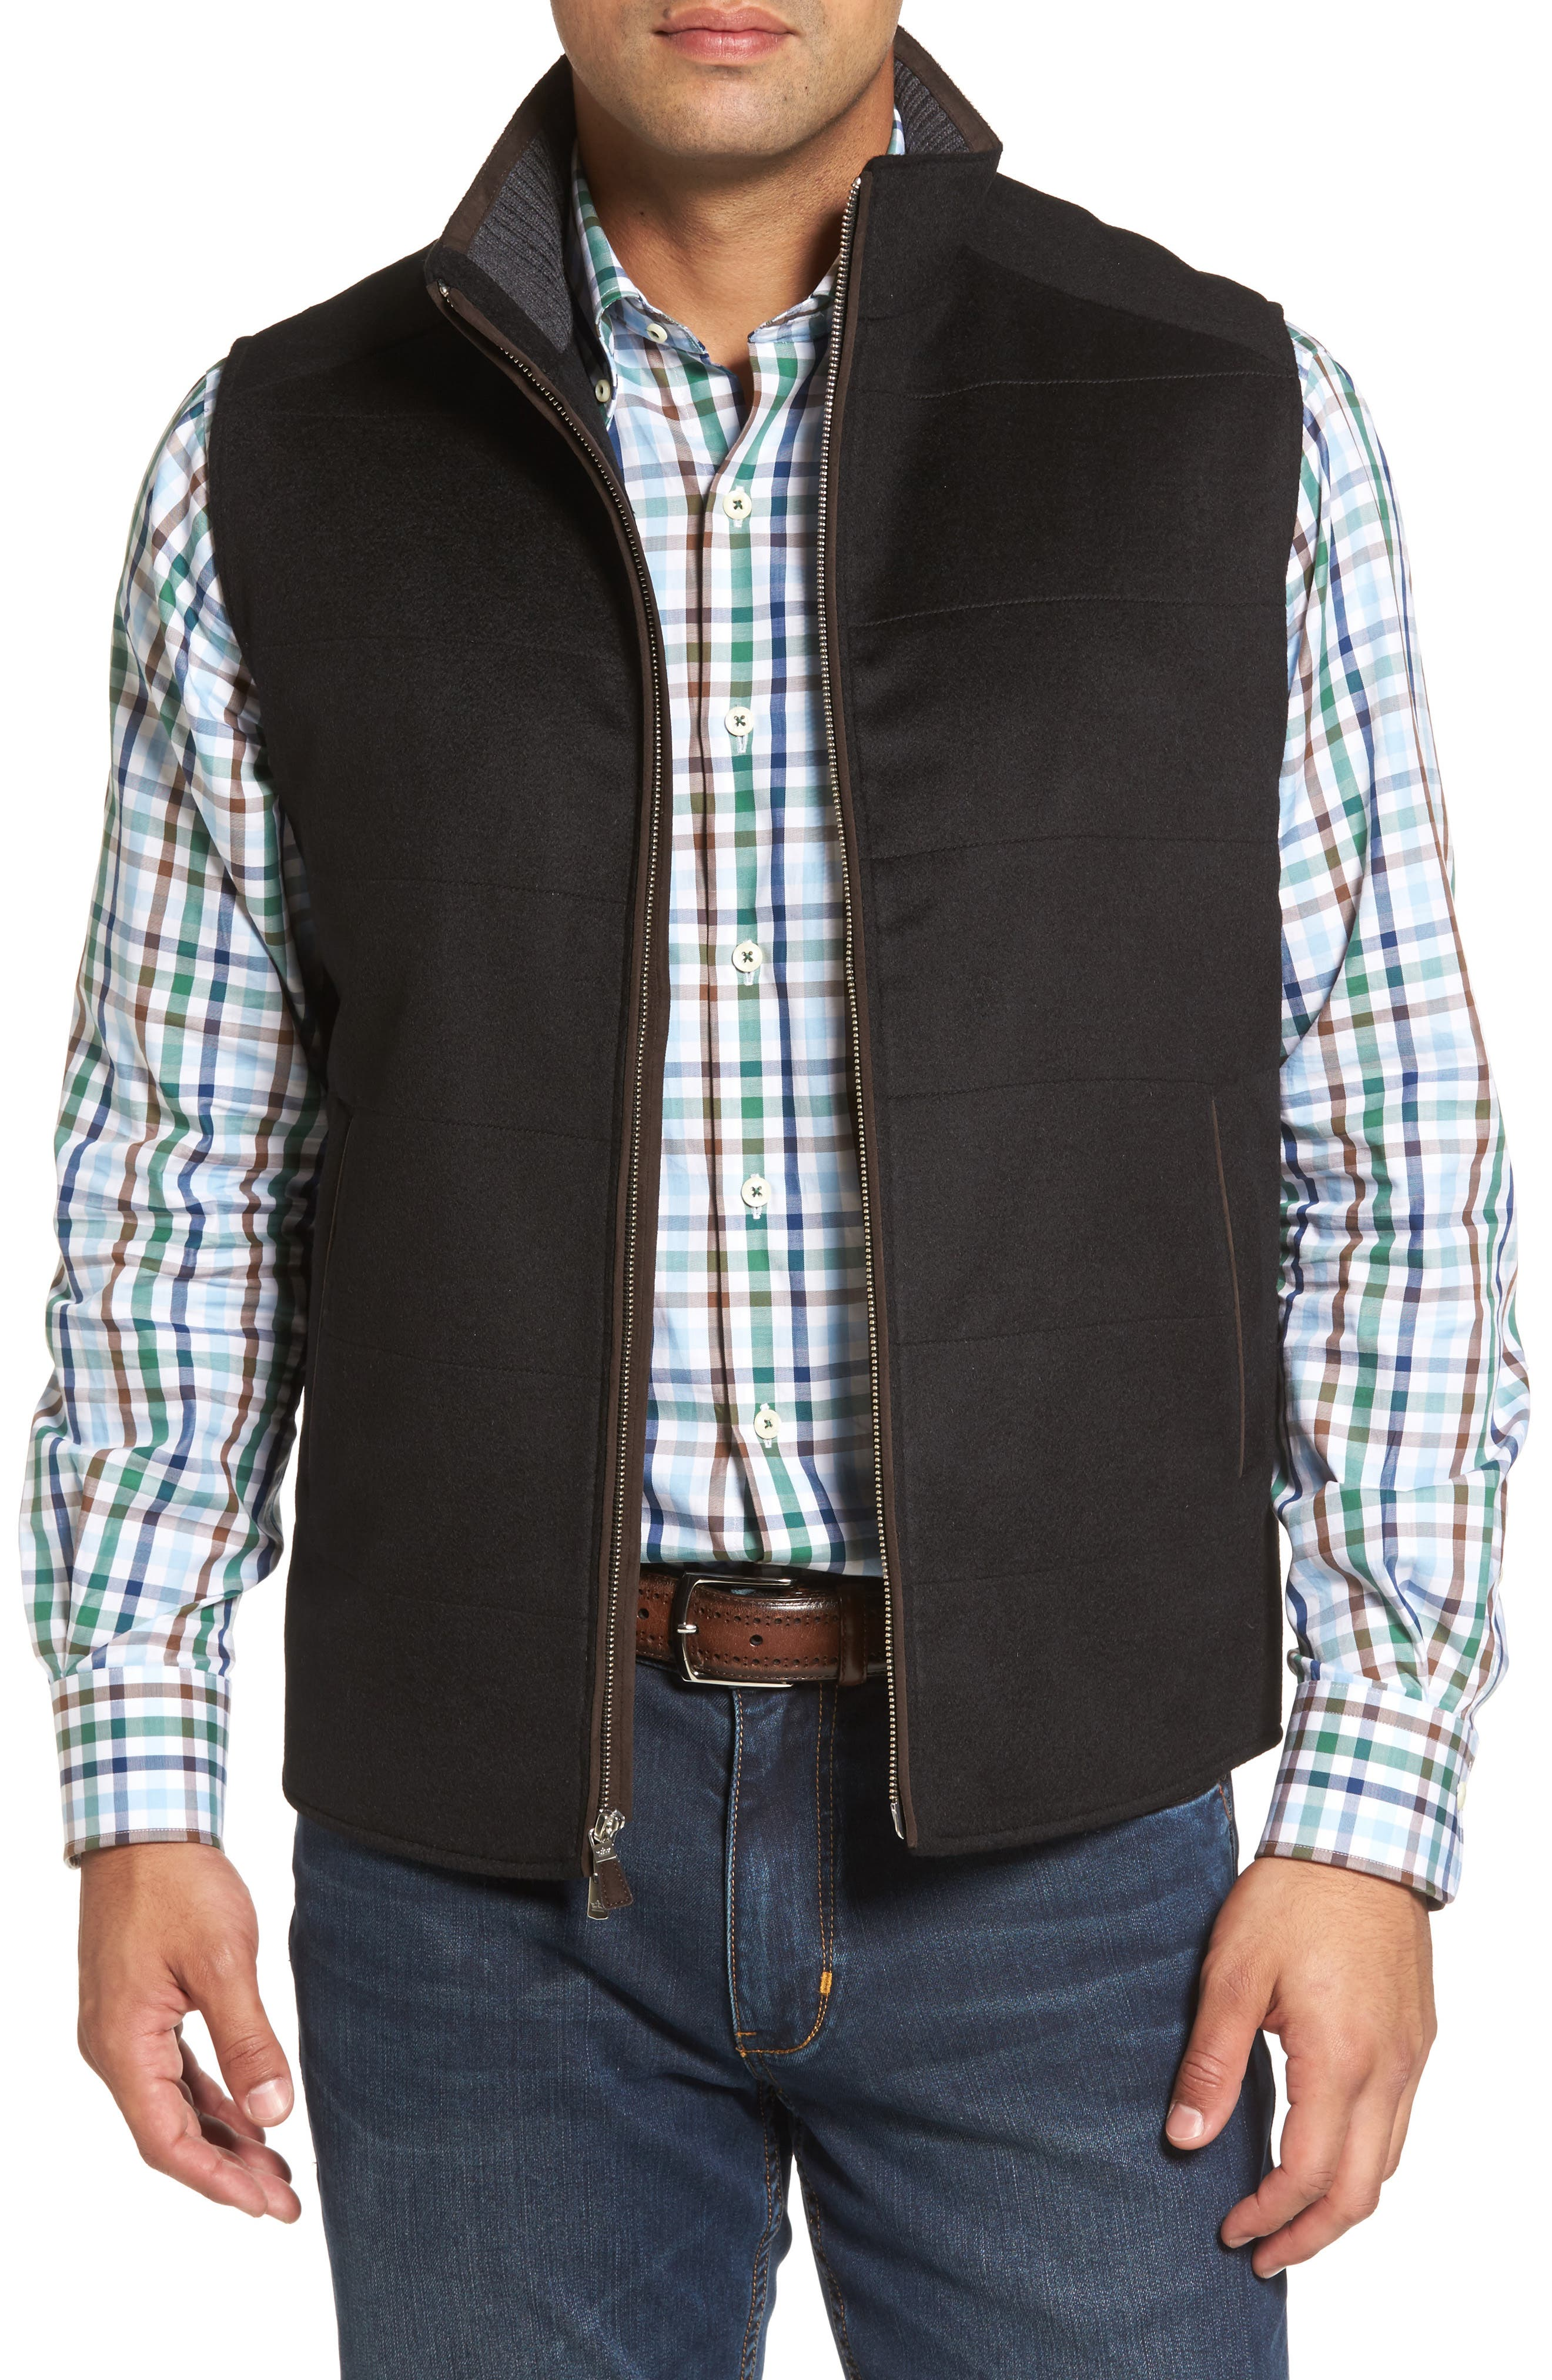 Peter Millar Crown Darien Wool & Cashmere Vest